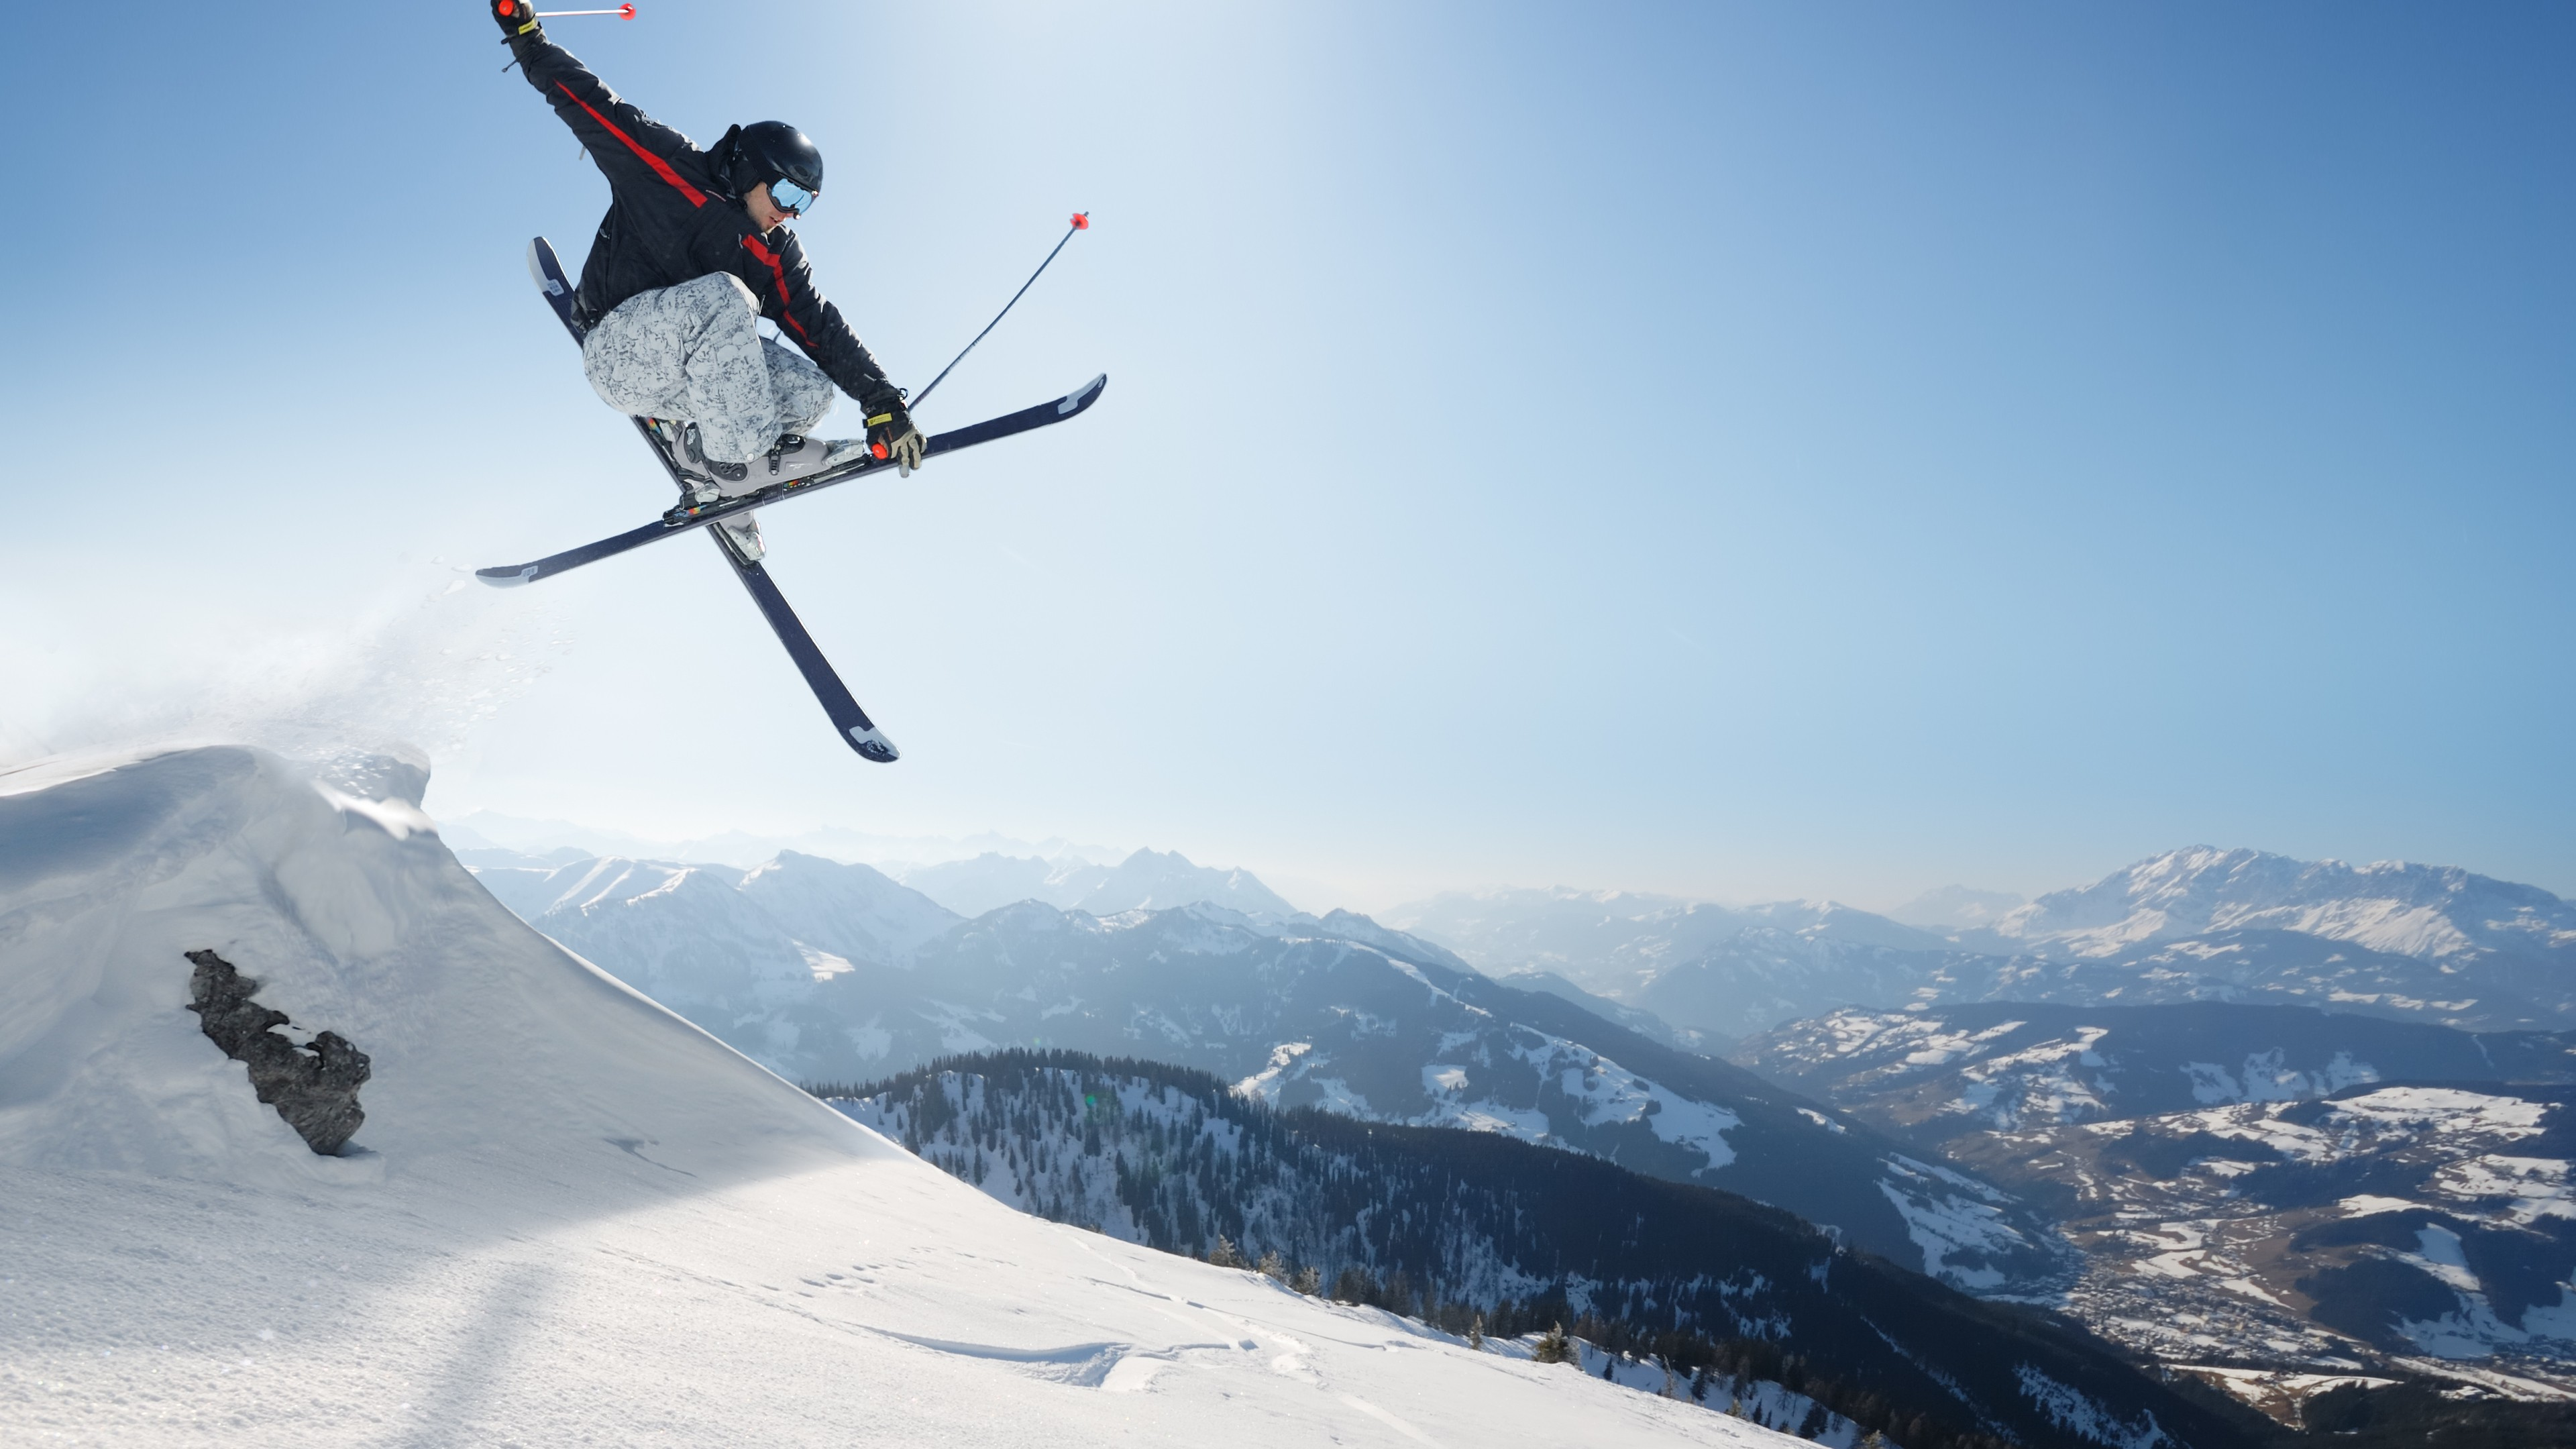 extreme snowboarding wallpapers - photo #7